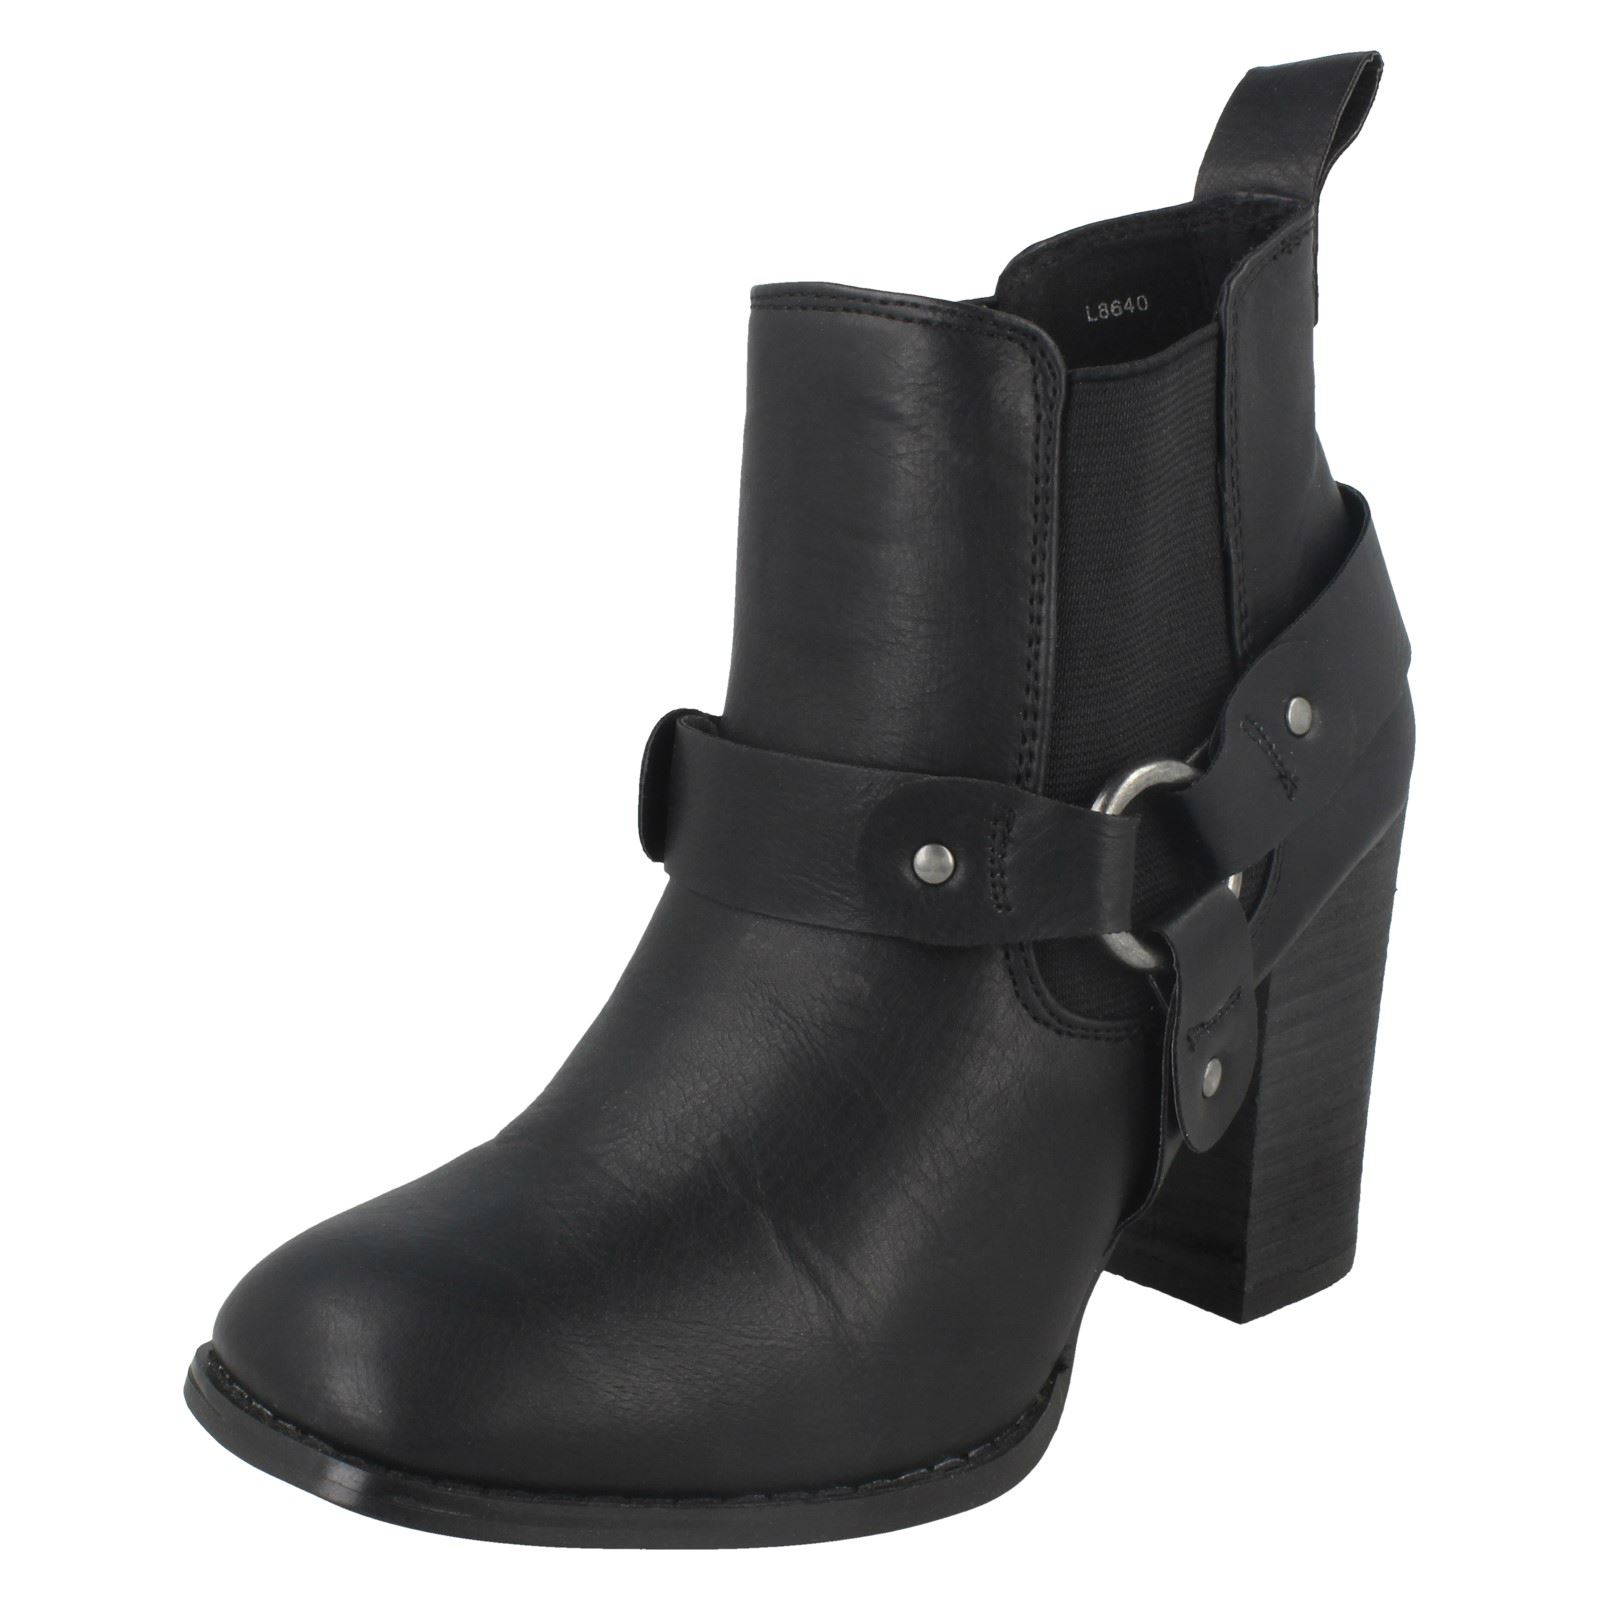 1a5ebd4d68c7 Ladies Anne Michelle Ankle BOOTS With Elasticated Gusset Black 5 Standard.  About this product. Picture 1 of 10  Picture 2 of 10 ...